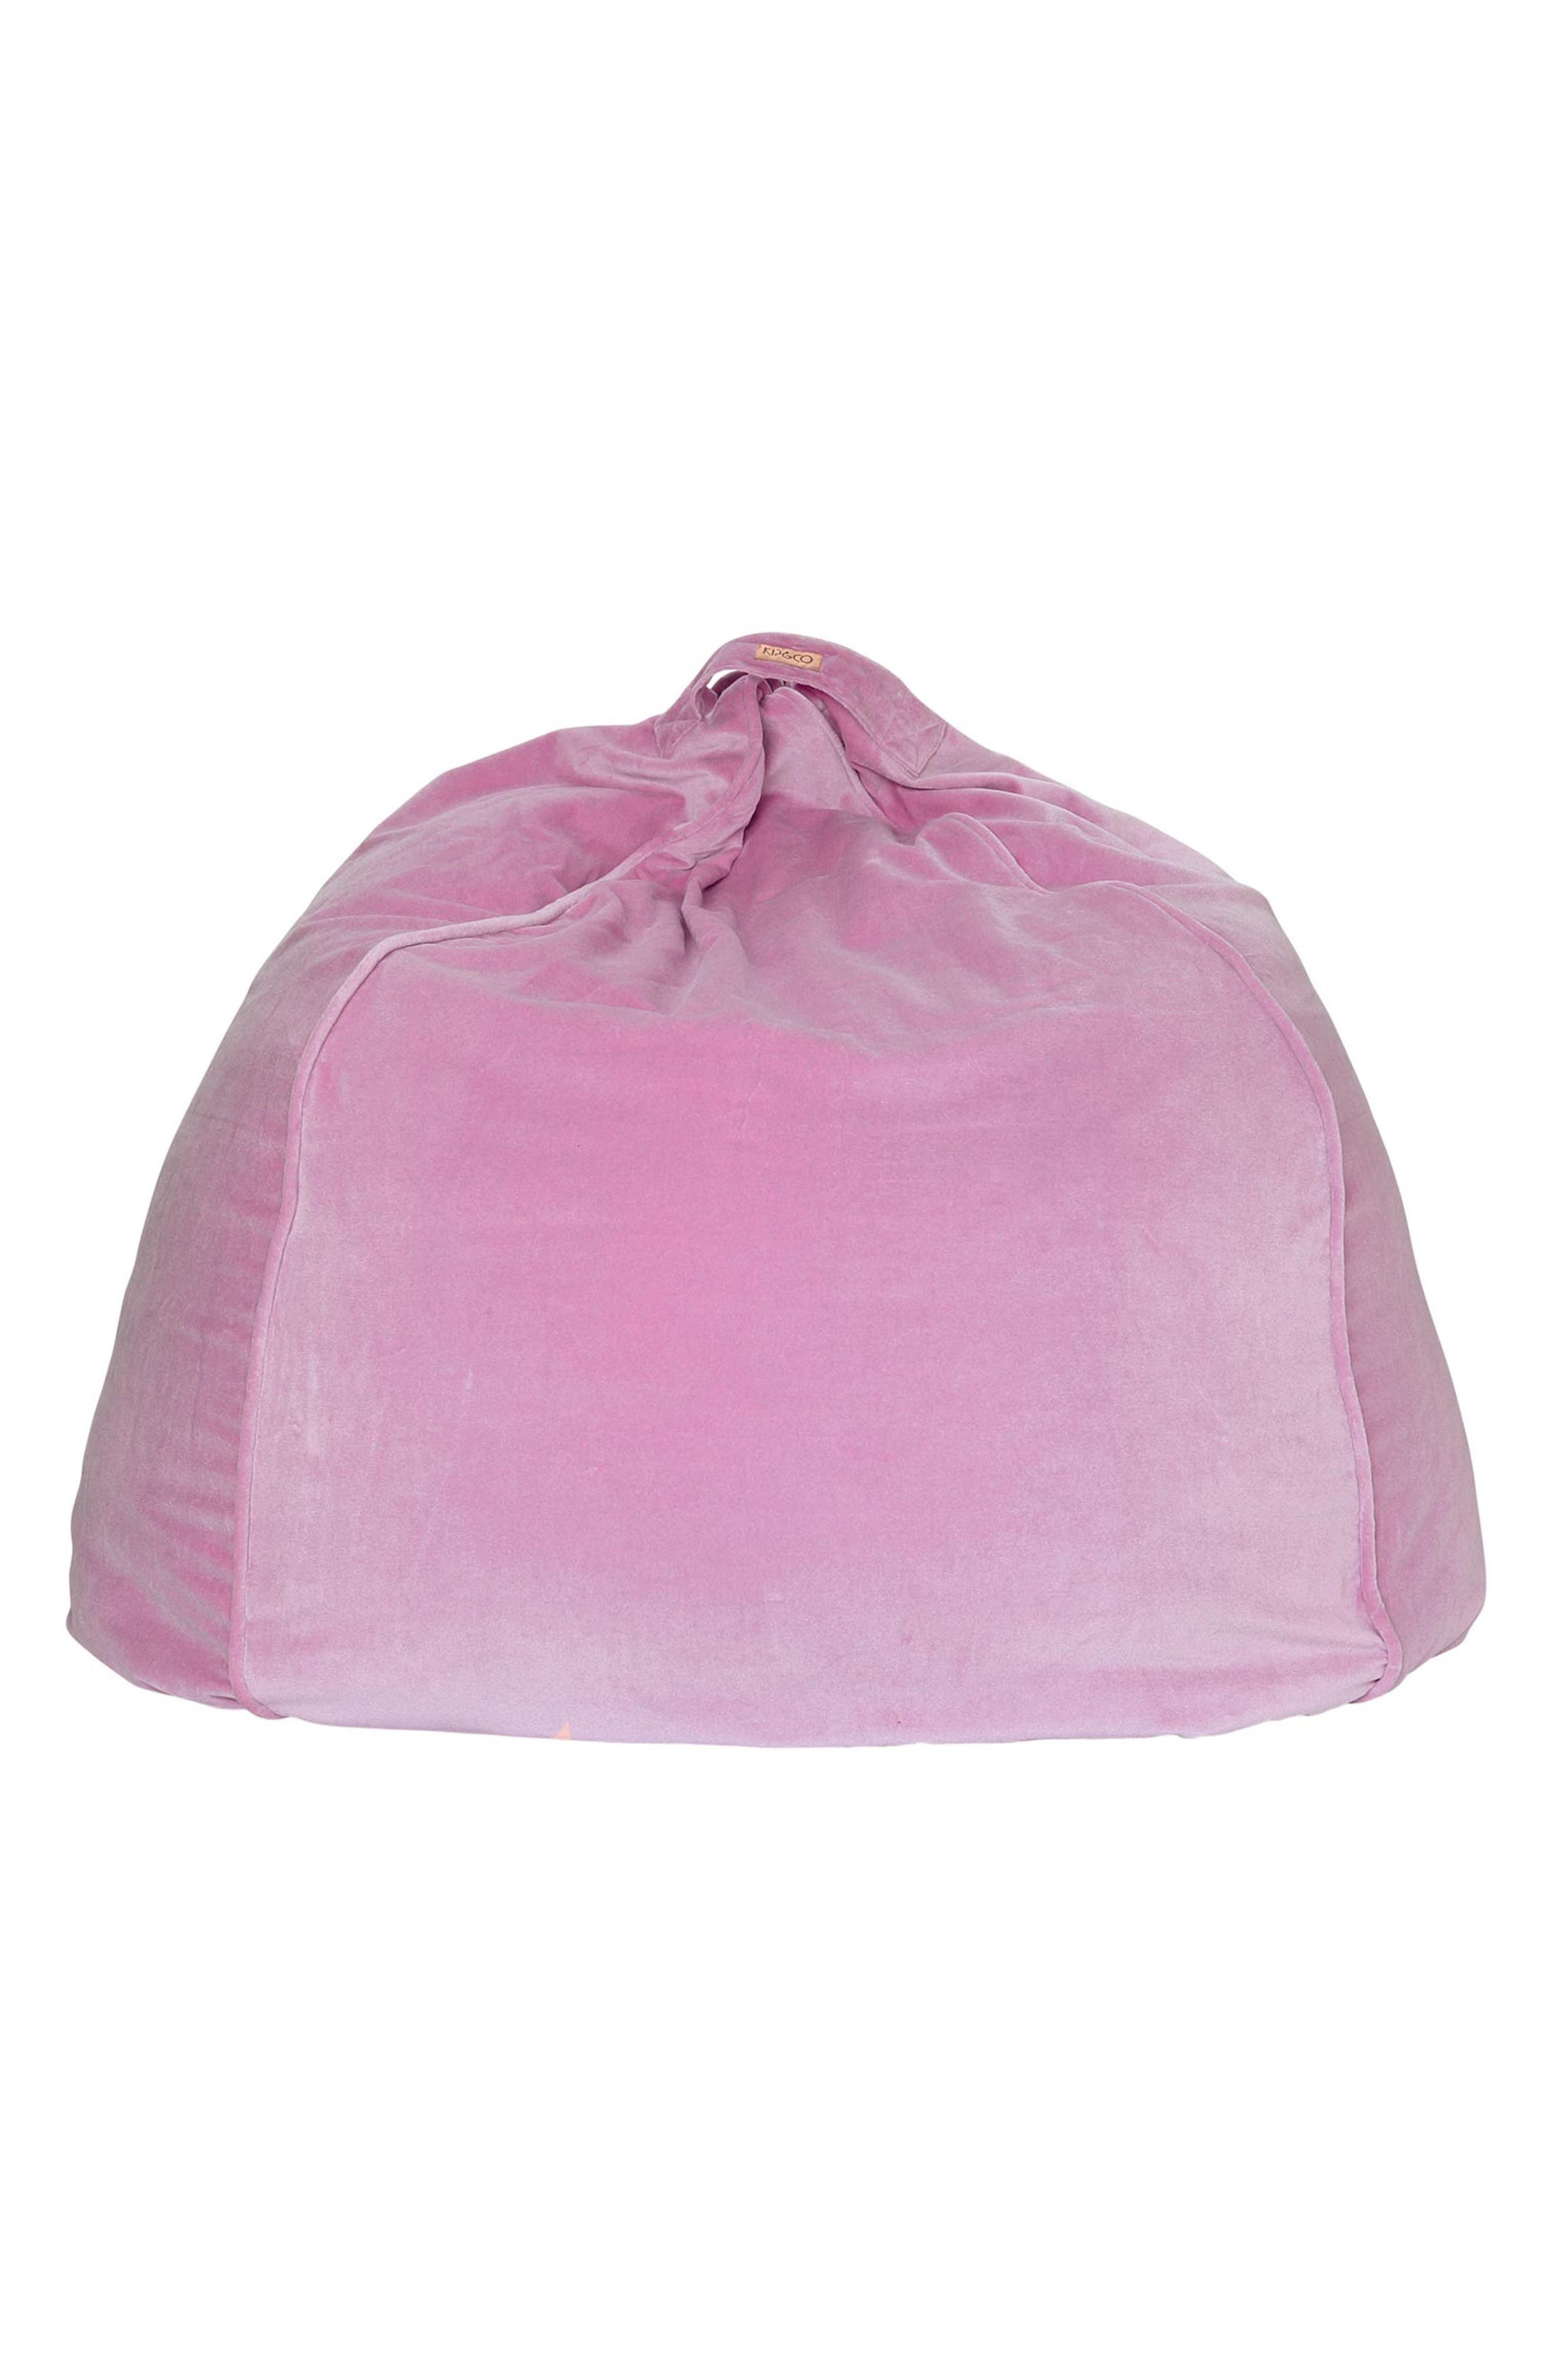 Velvet Beanbag Cover,                         Main,                         color, MULTI